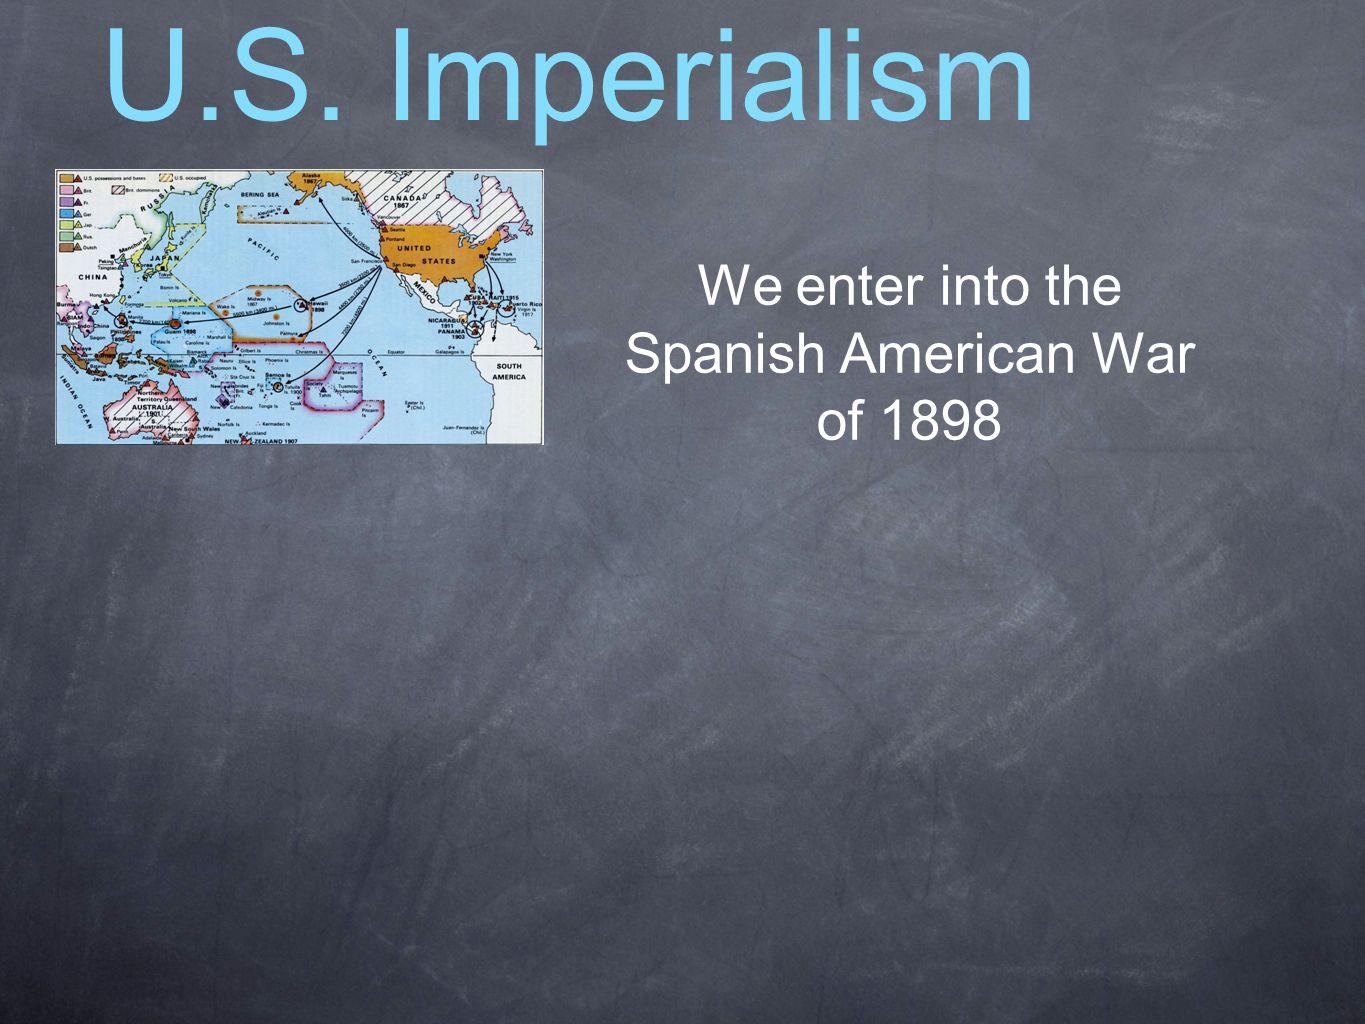 We enter into the Spanish American War of 1898